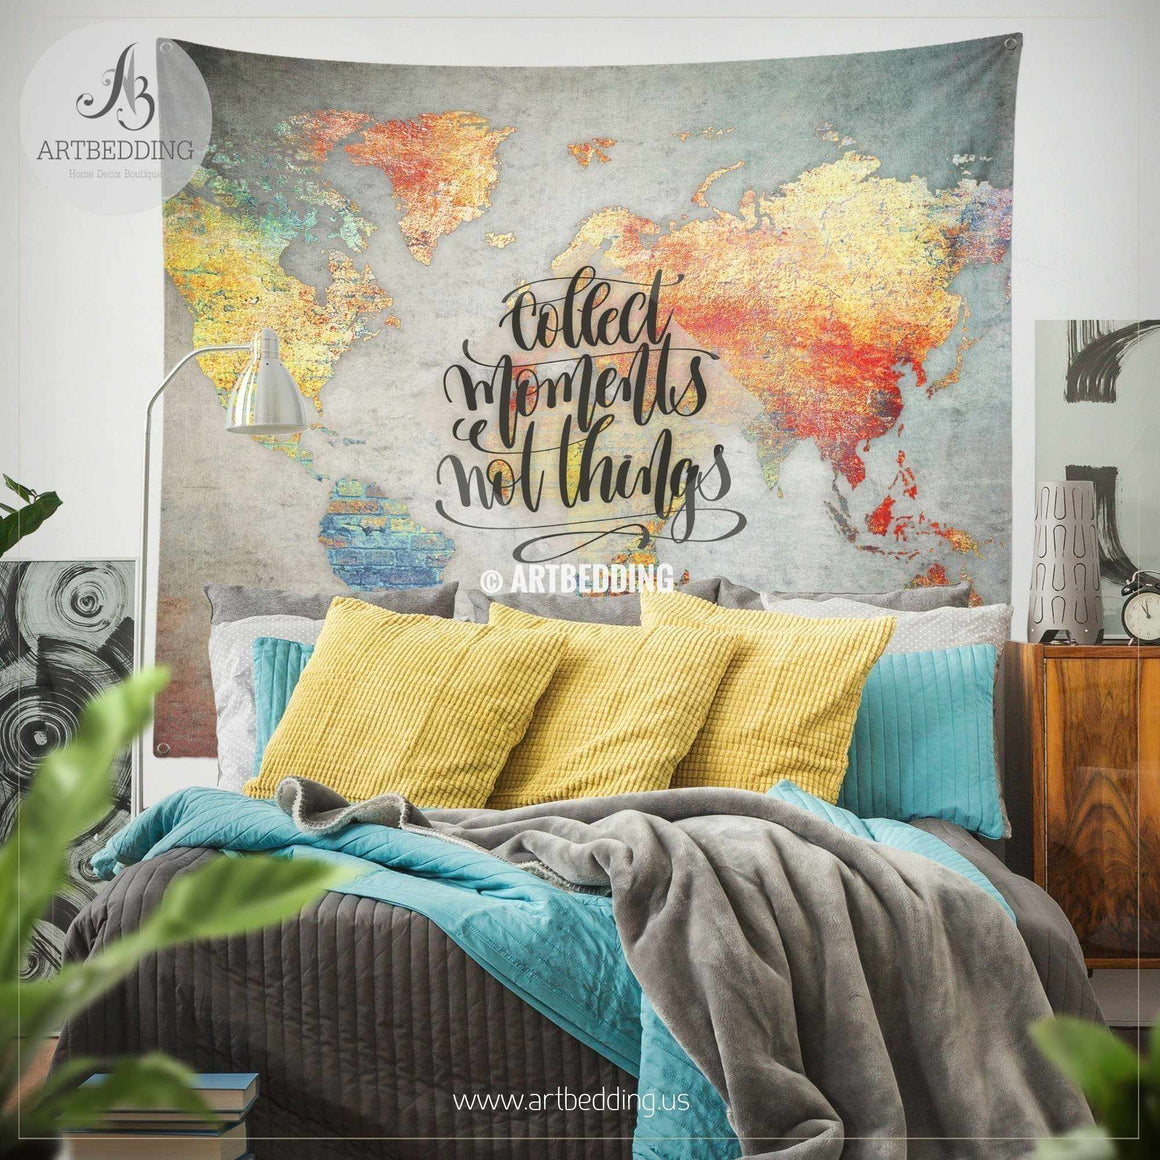 Concrete wall world map Inspiration Tapestry, Abstract world map wall hanging, bohemian travel wall tapestries, boho wall decor Tapestry